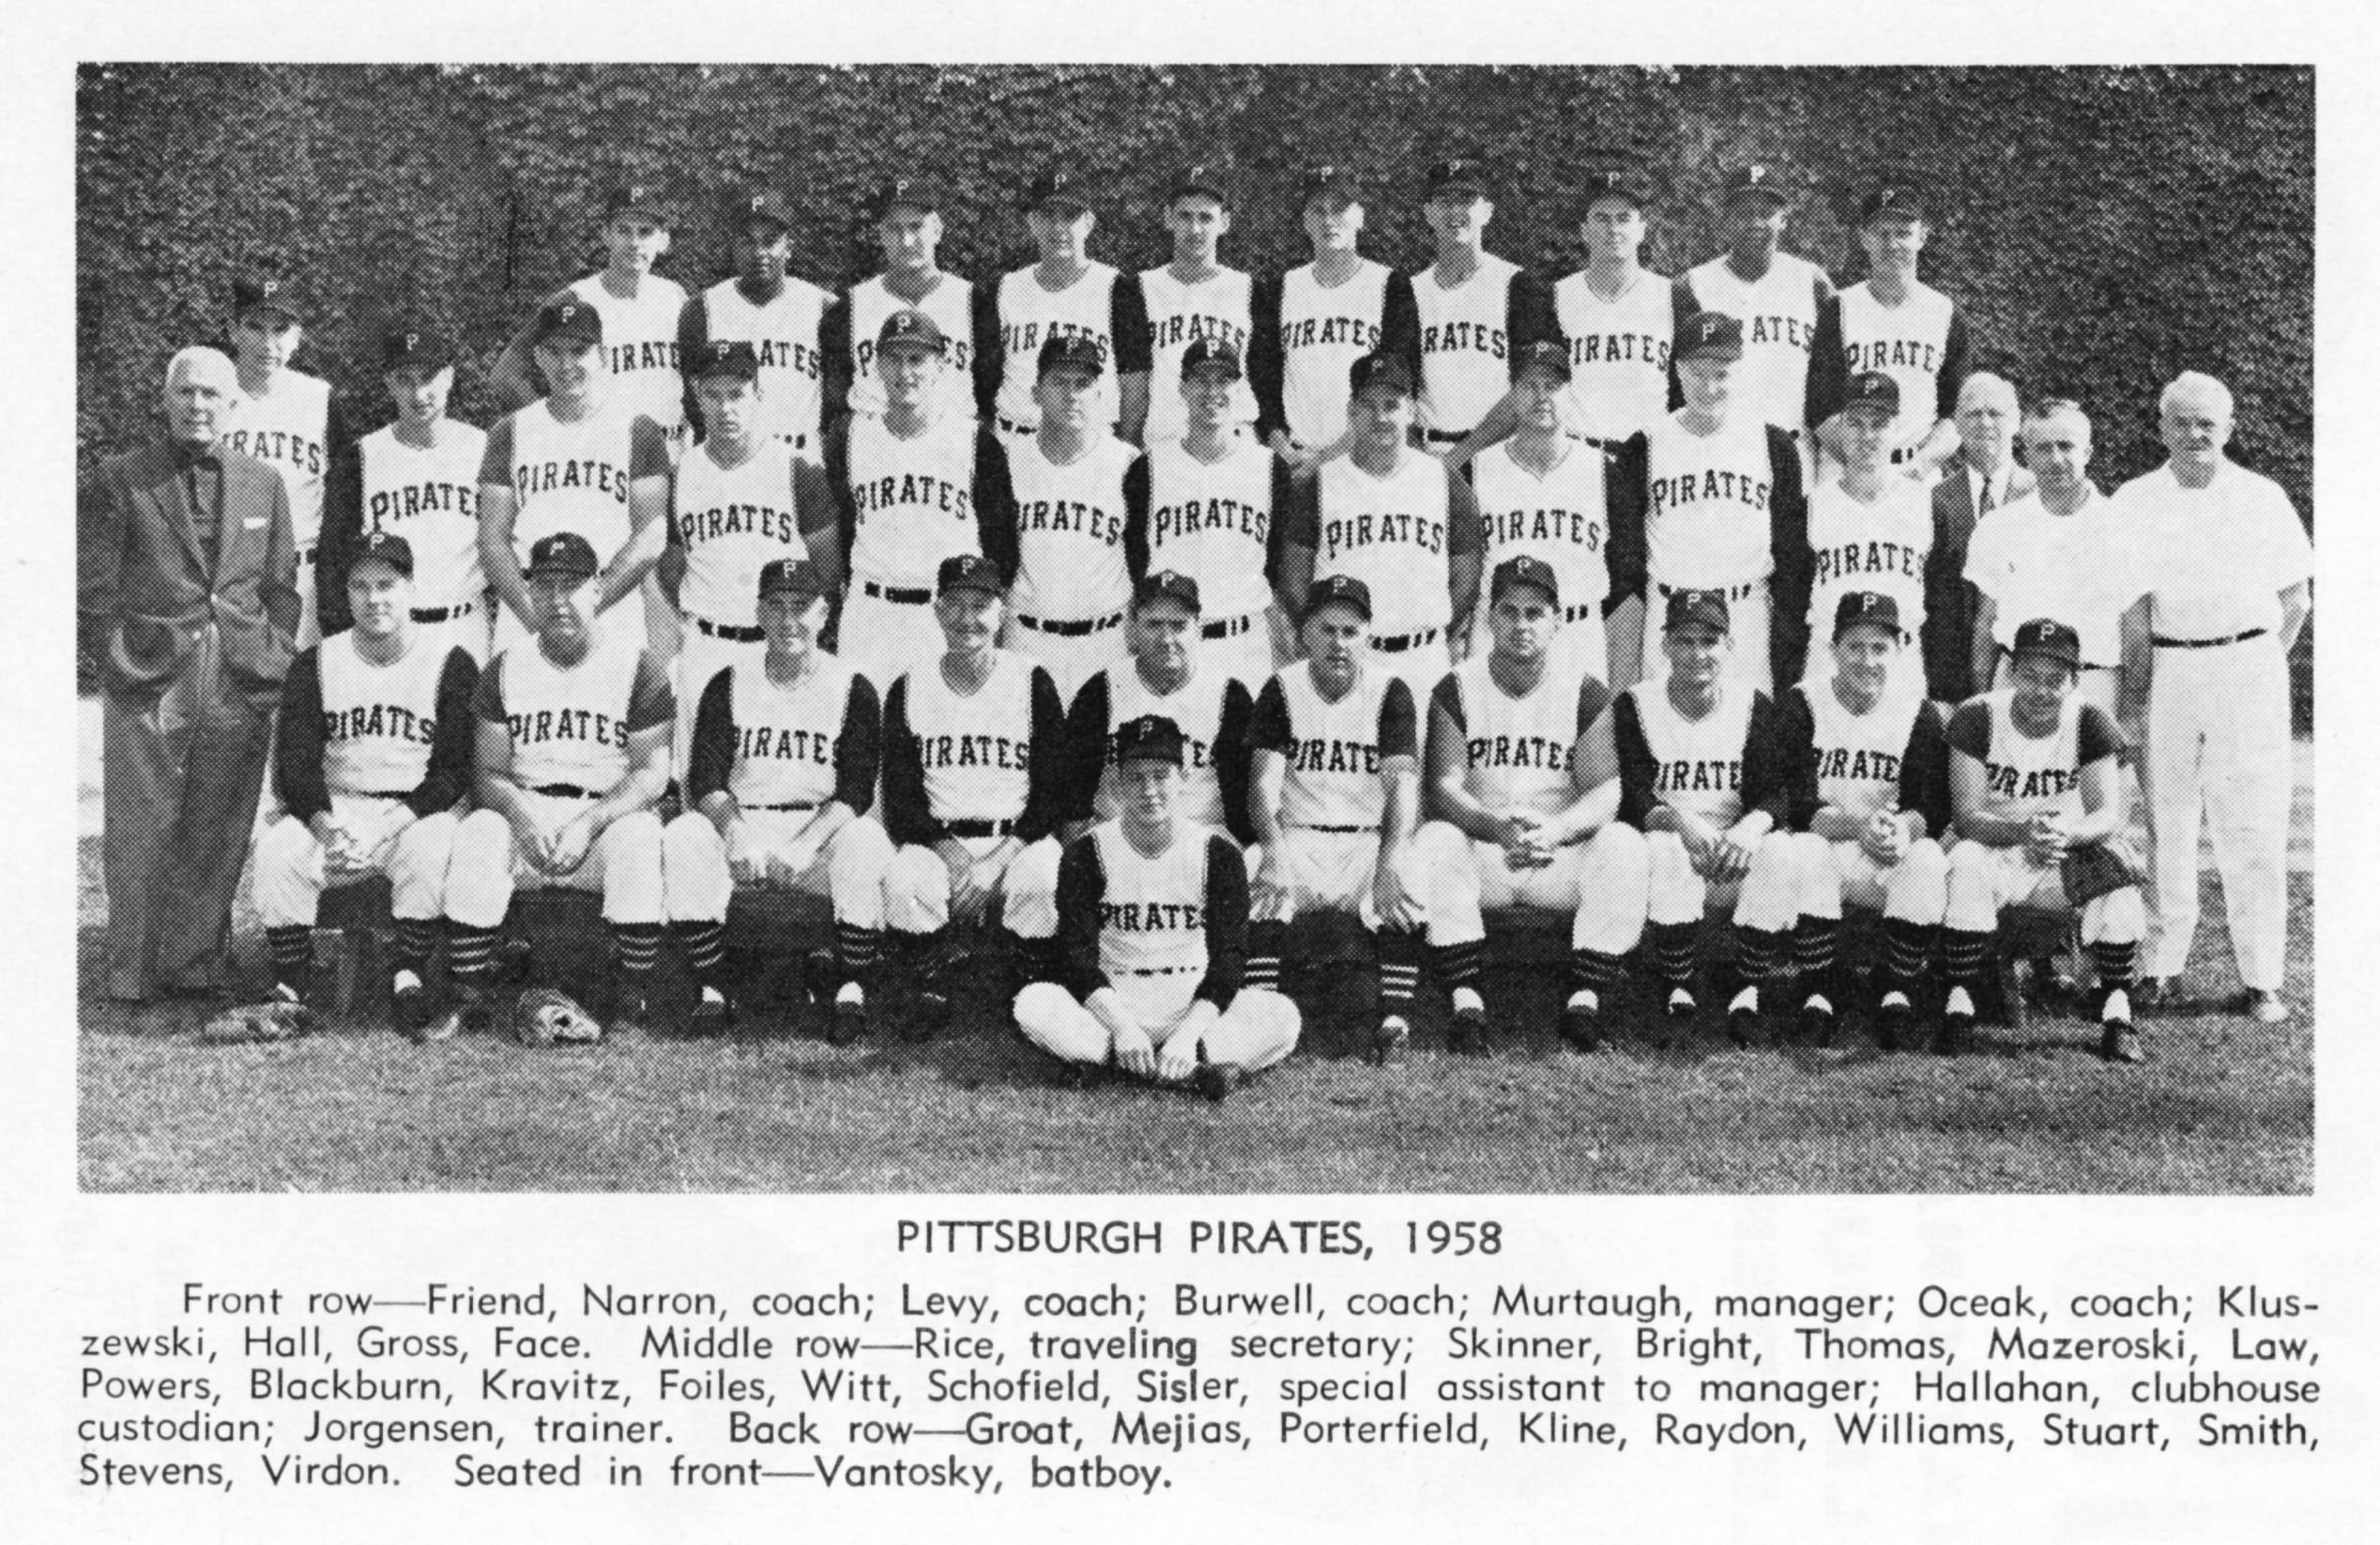 1958 PITTSBURGH PIRATES baseball mlb wallpaper background 2536x1646